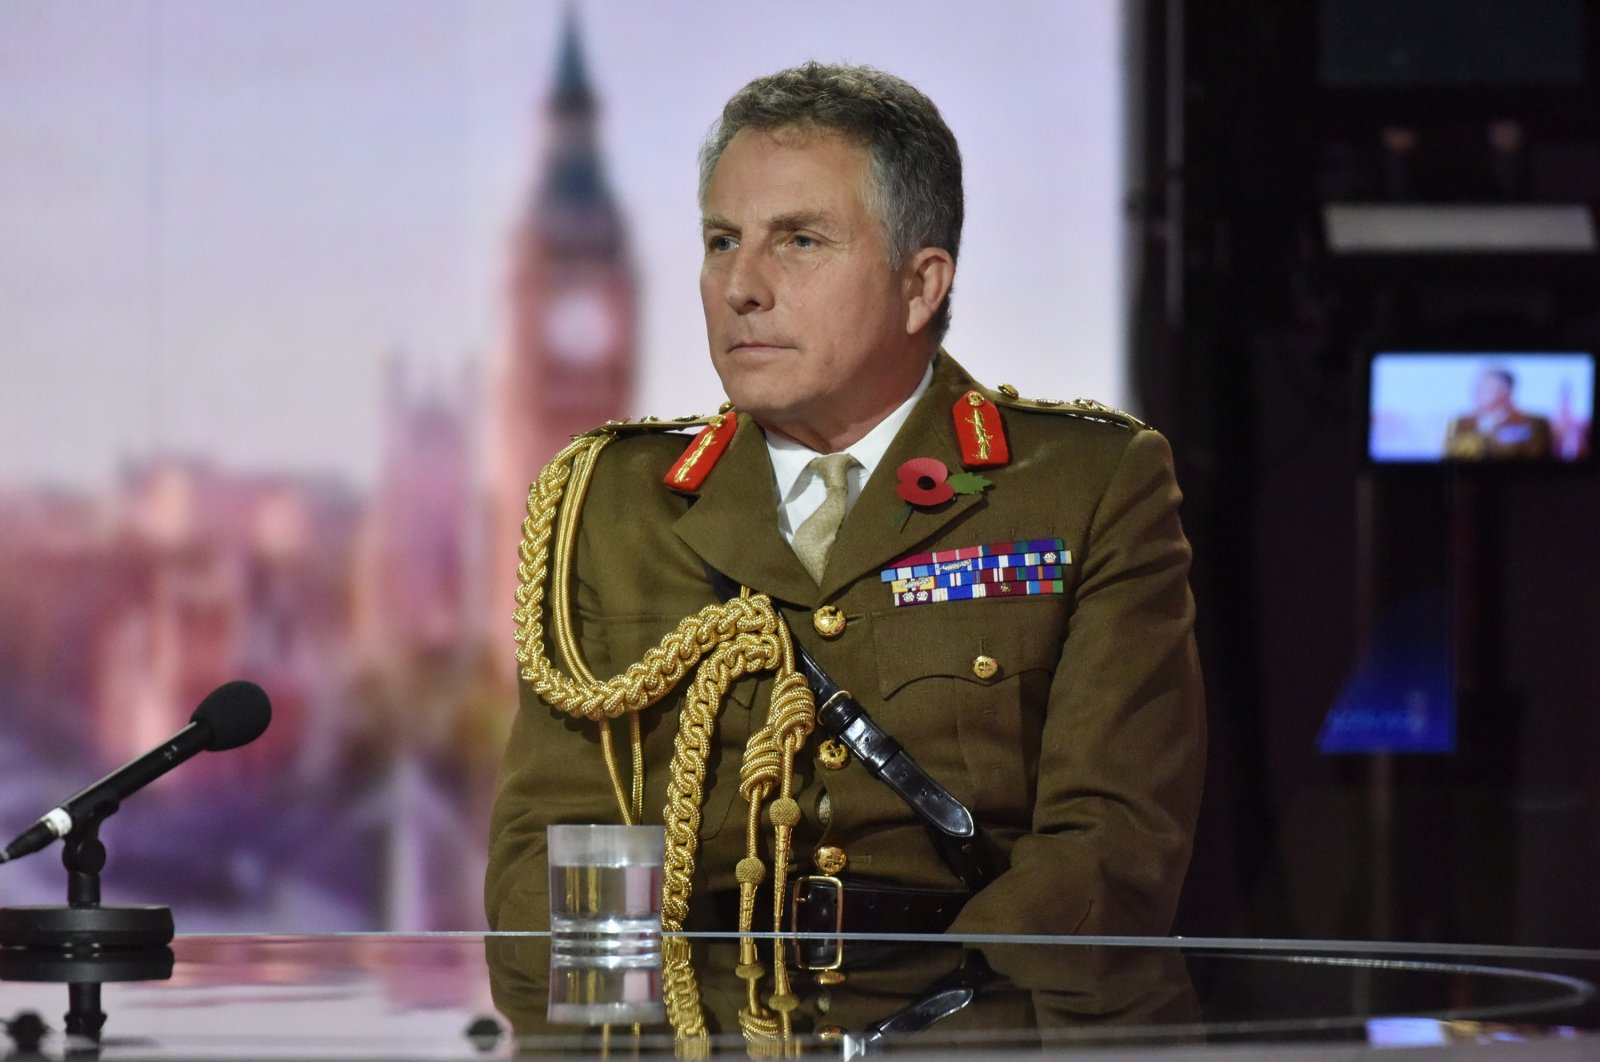 Britain's Chief of the Defence Staff, General Nick Carter, appears on BBC TV's The Andrew Marr Show, London, Nov. 8, 2020. (iREUTERS Photo)